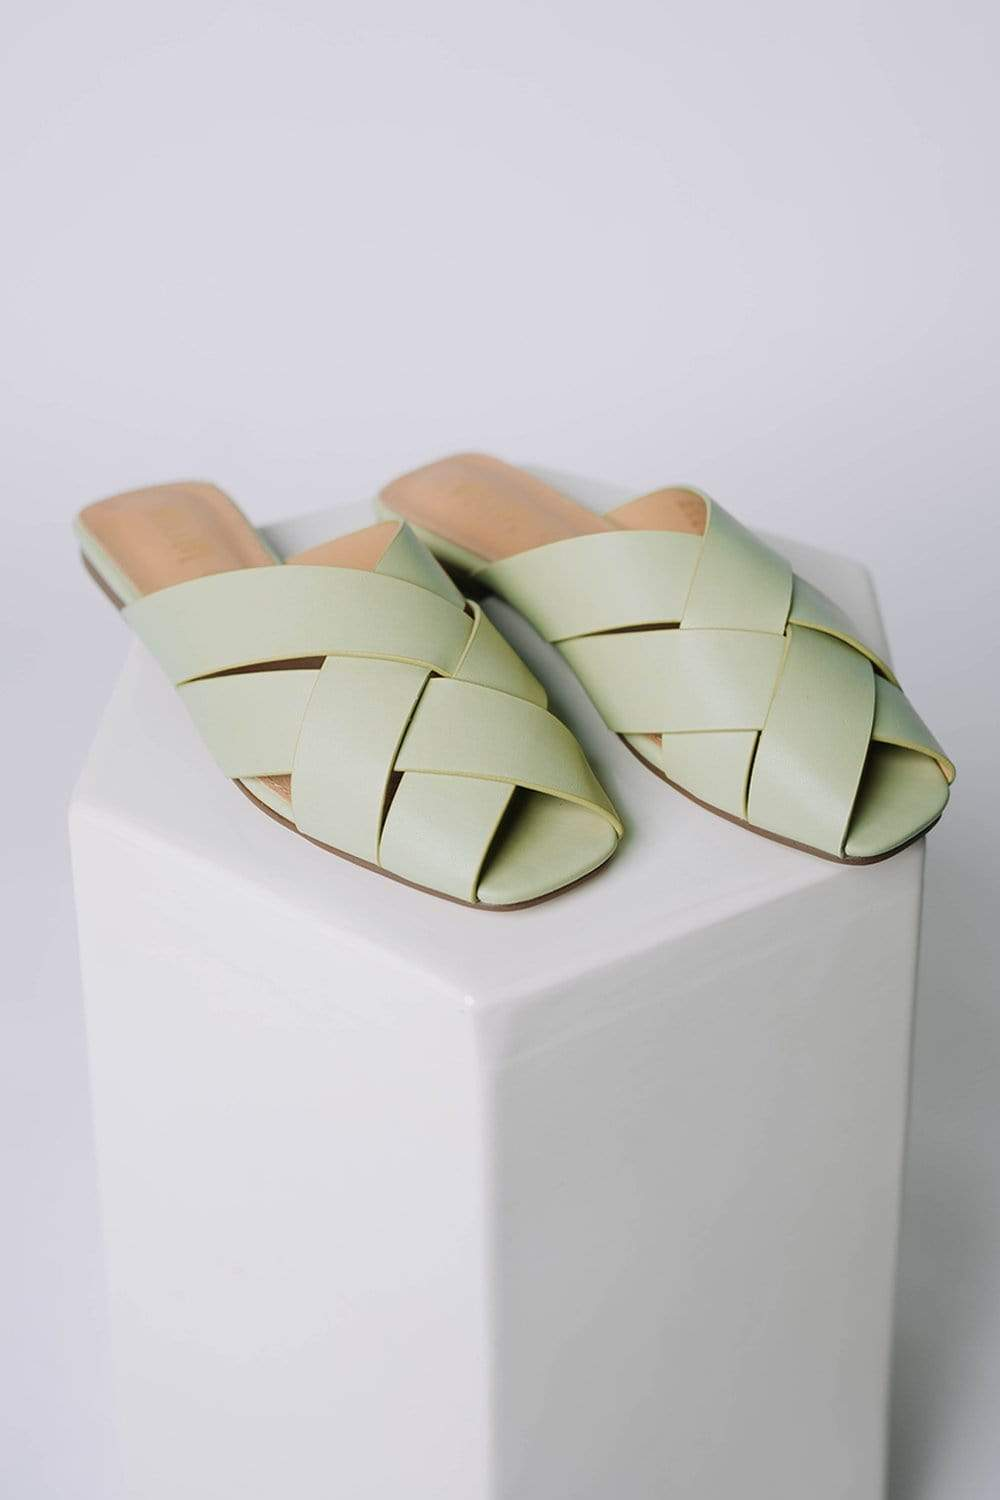 The Chloe Flat in Mint